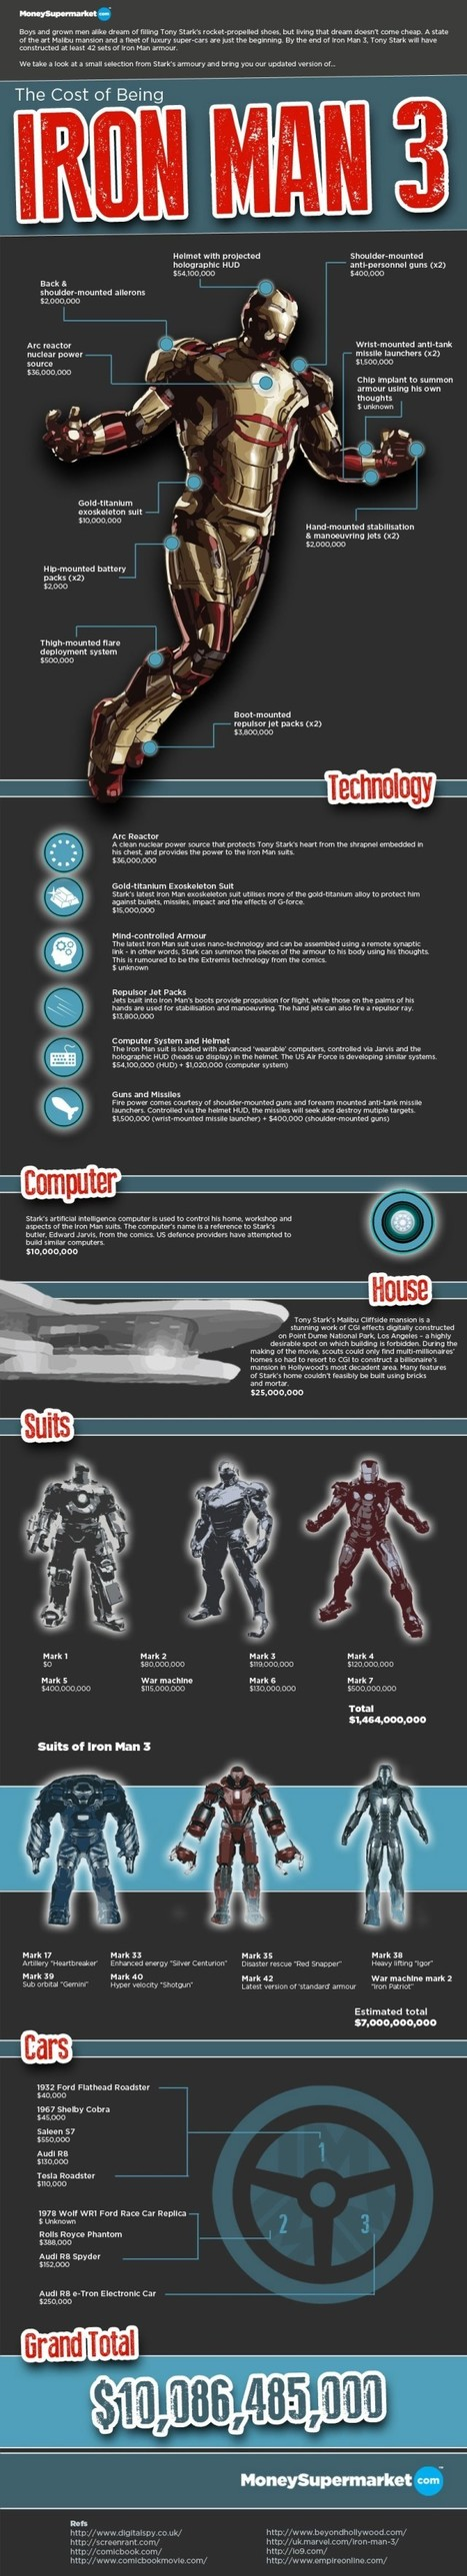 Collection of Iron Man Infographics   BestInfographics.co   The Best Infographics   Scoop.it